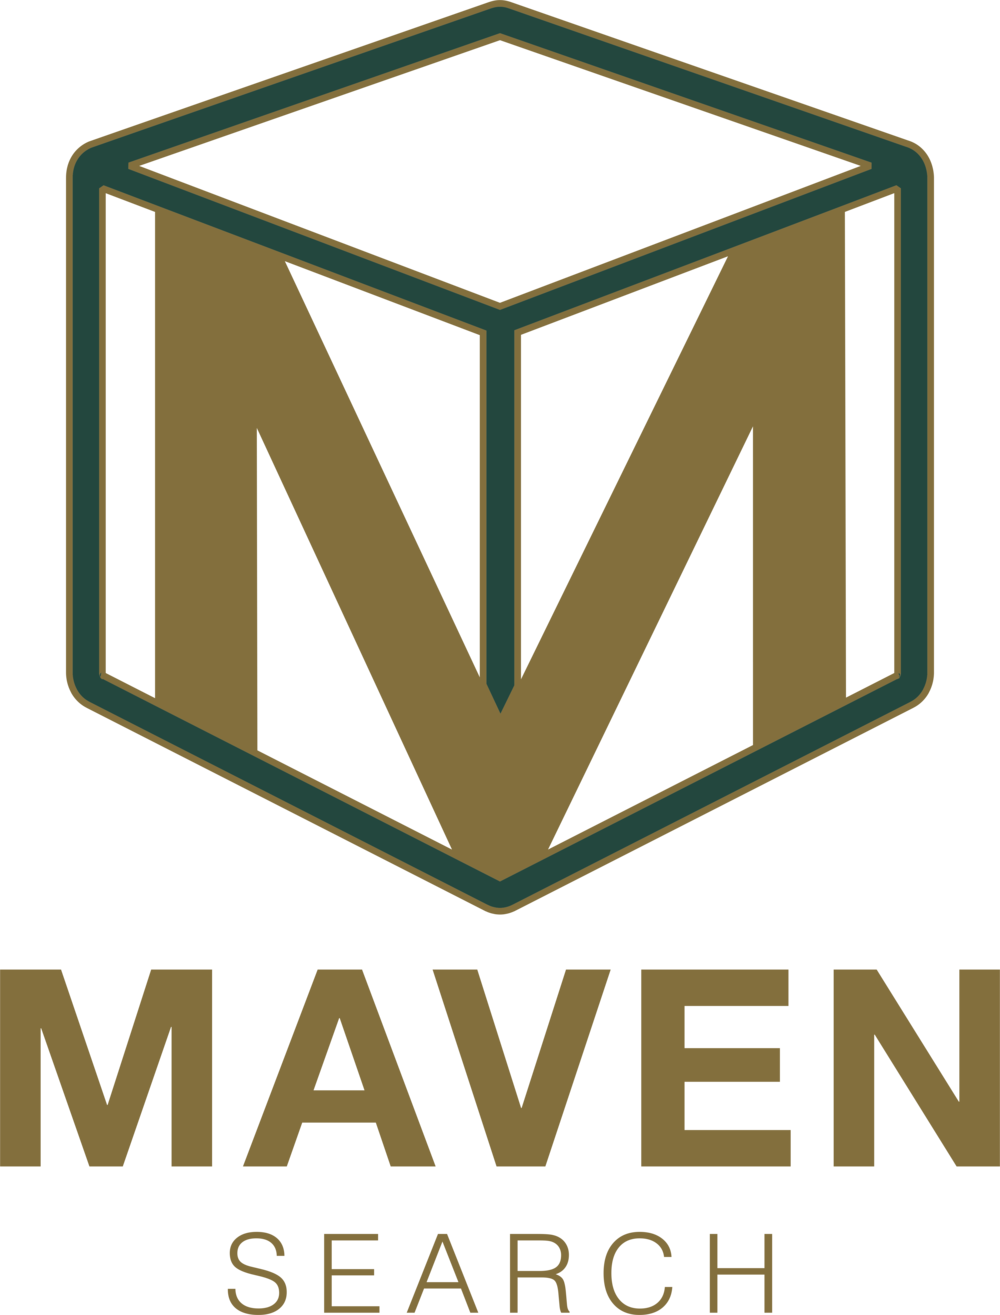 Maven Search Logo by The EMMS